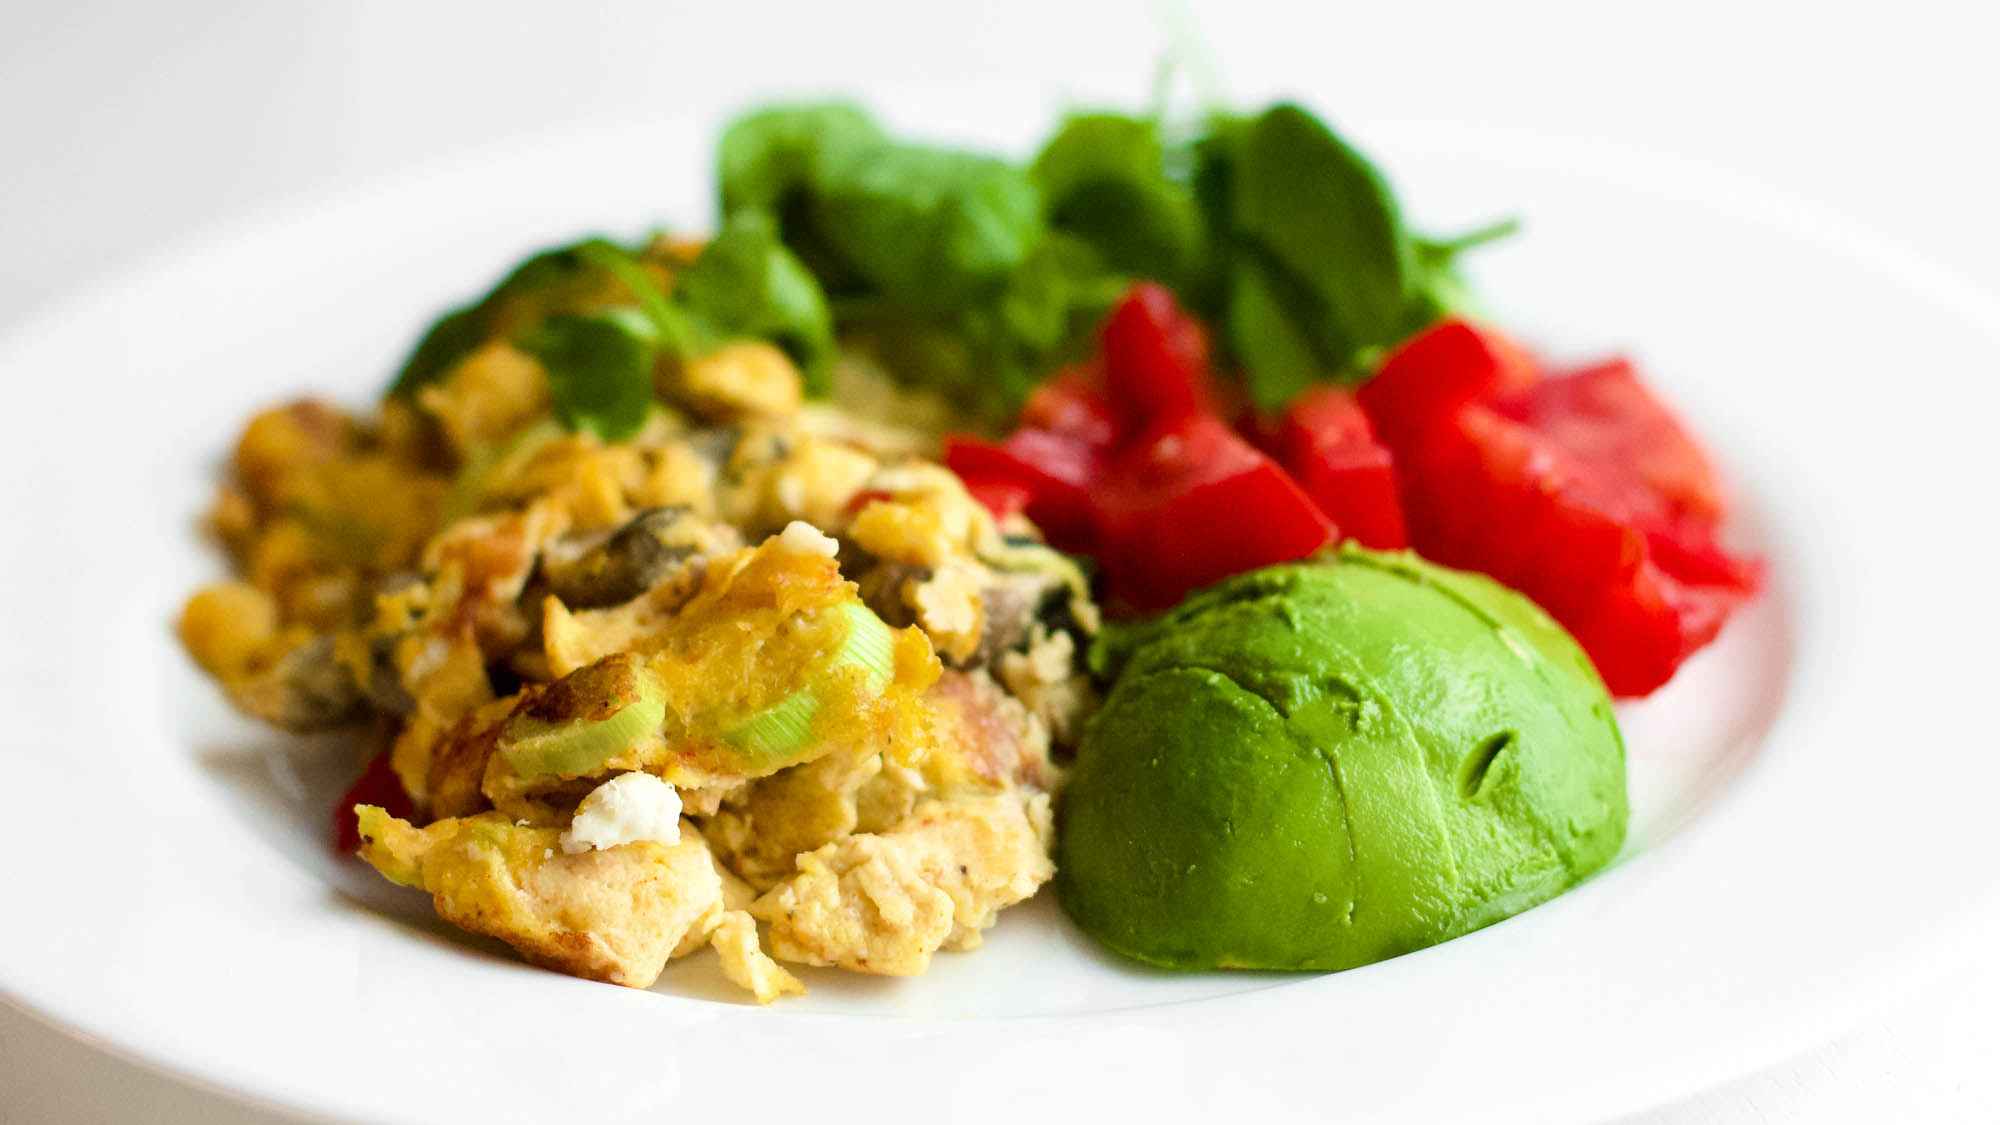 Colorful Scrambled Eggs with Vegetables